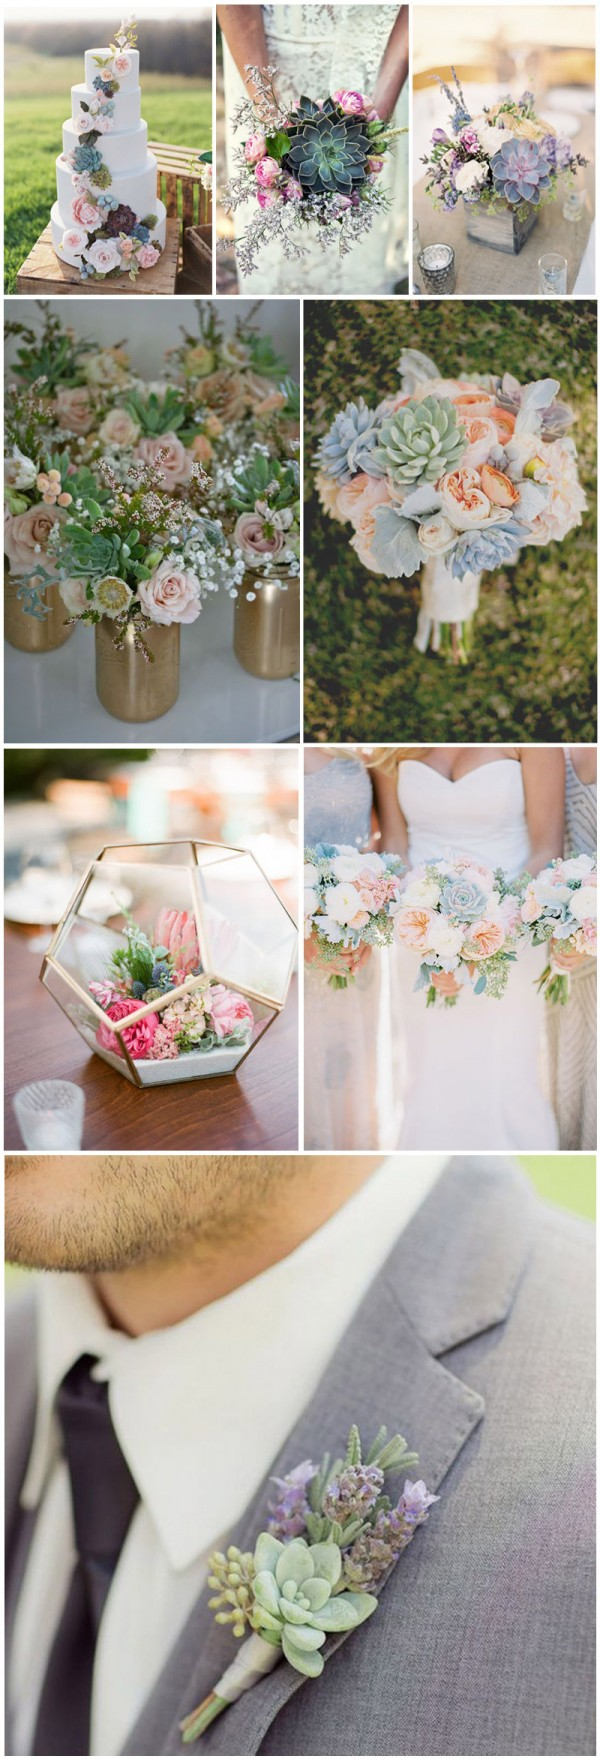 Top 10 Flowers Themed Wedding For Outdoor Ceremony Weddinginclude